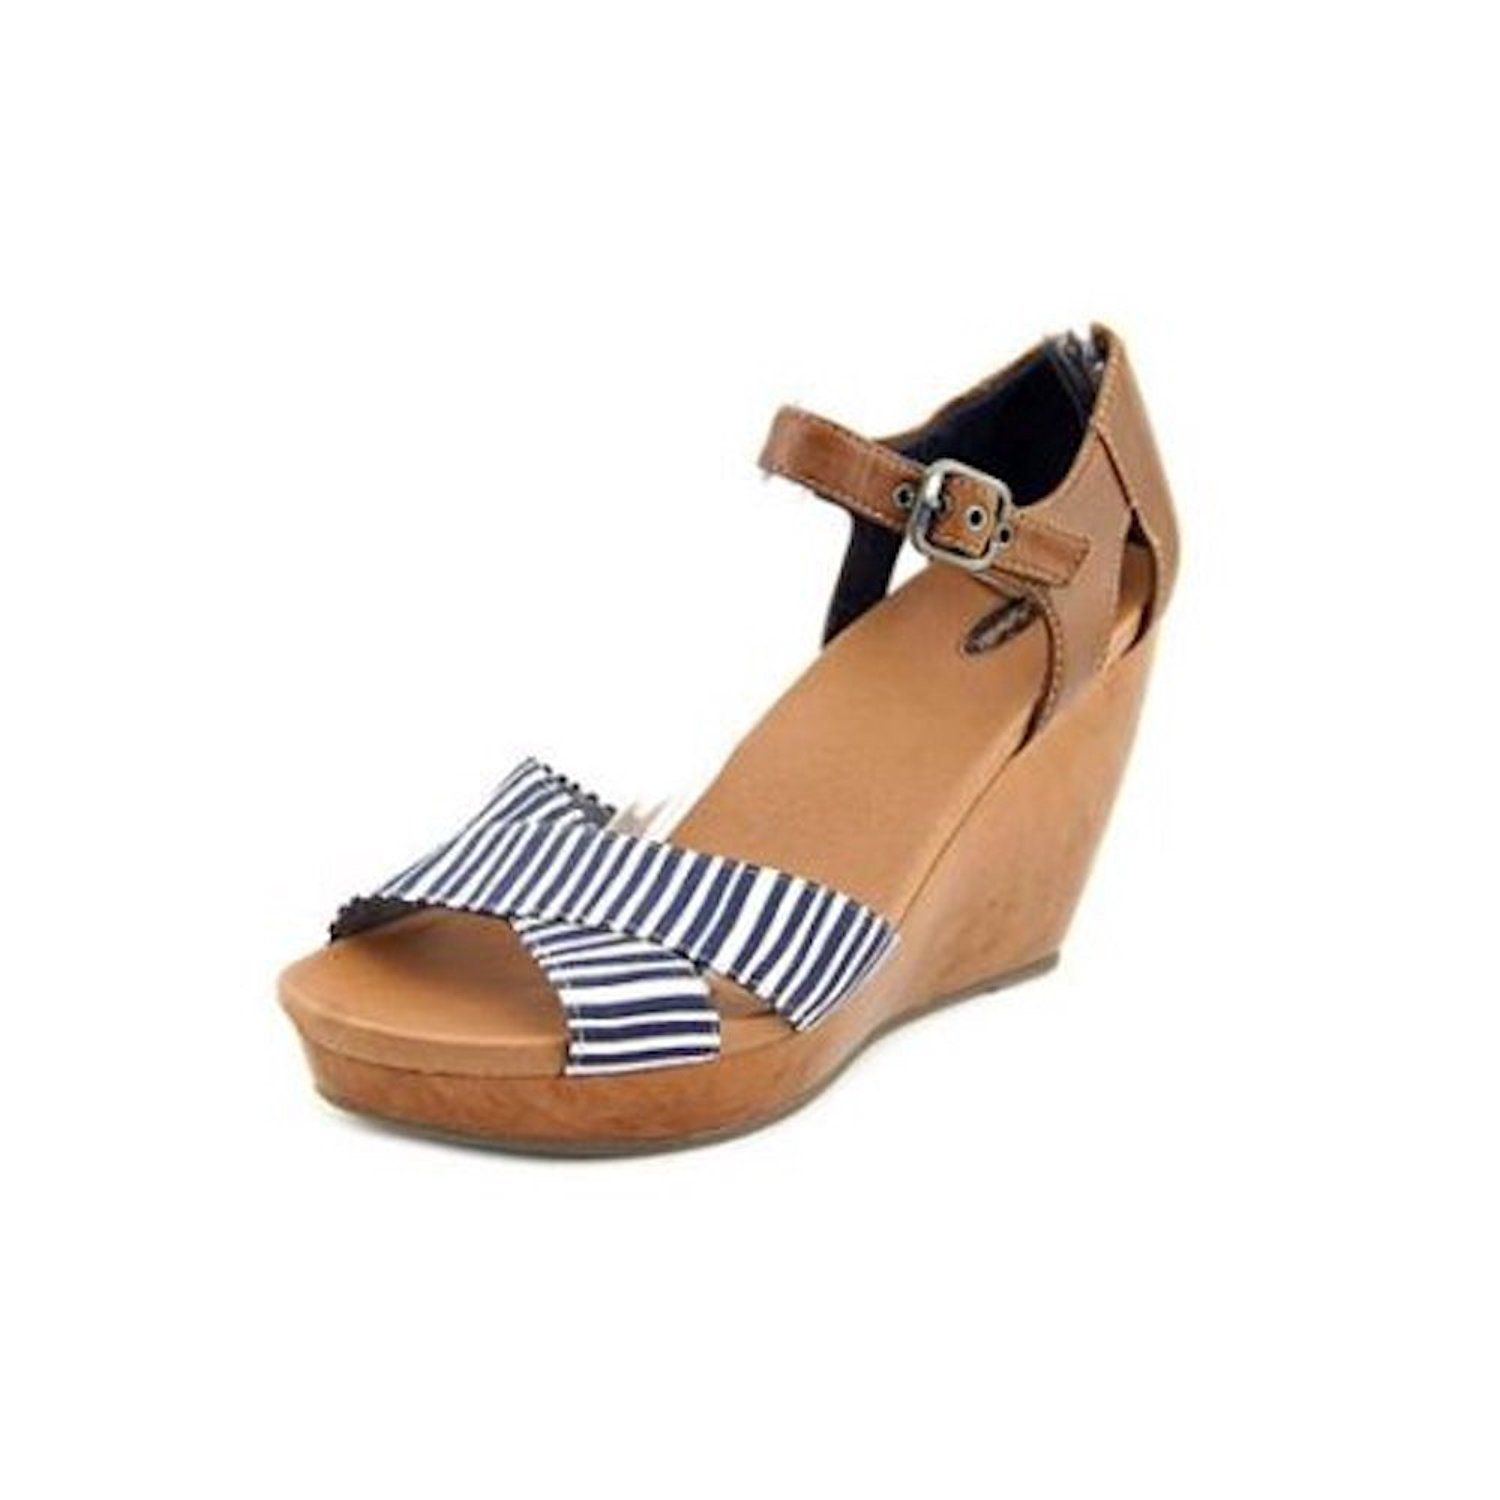 0633aa48e77 Dr. Scholl s Women s Melody Wedge Sandal